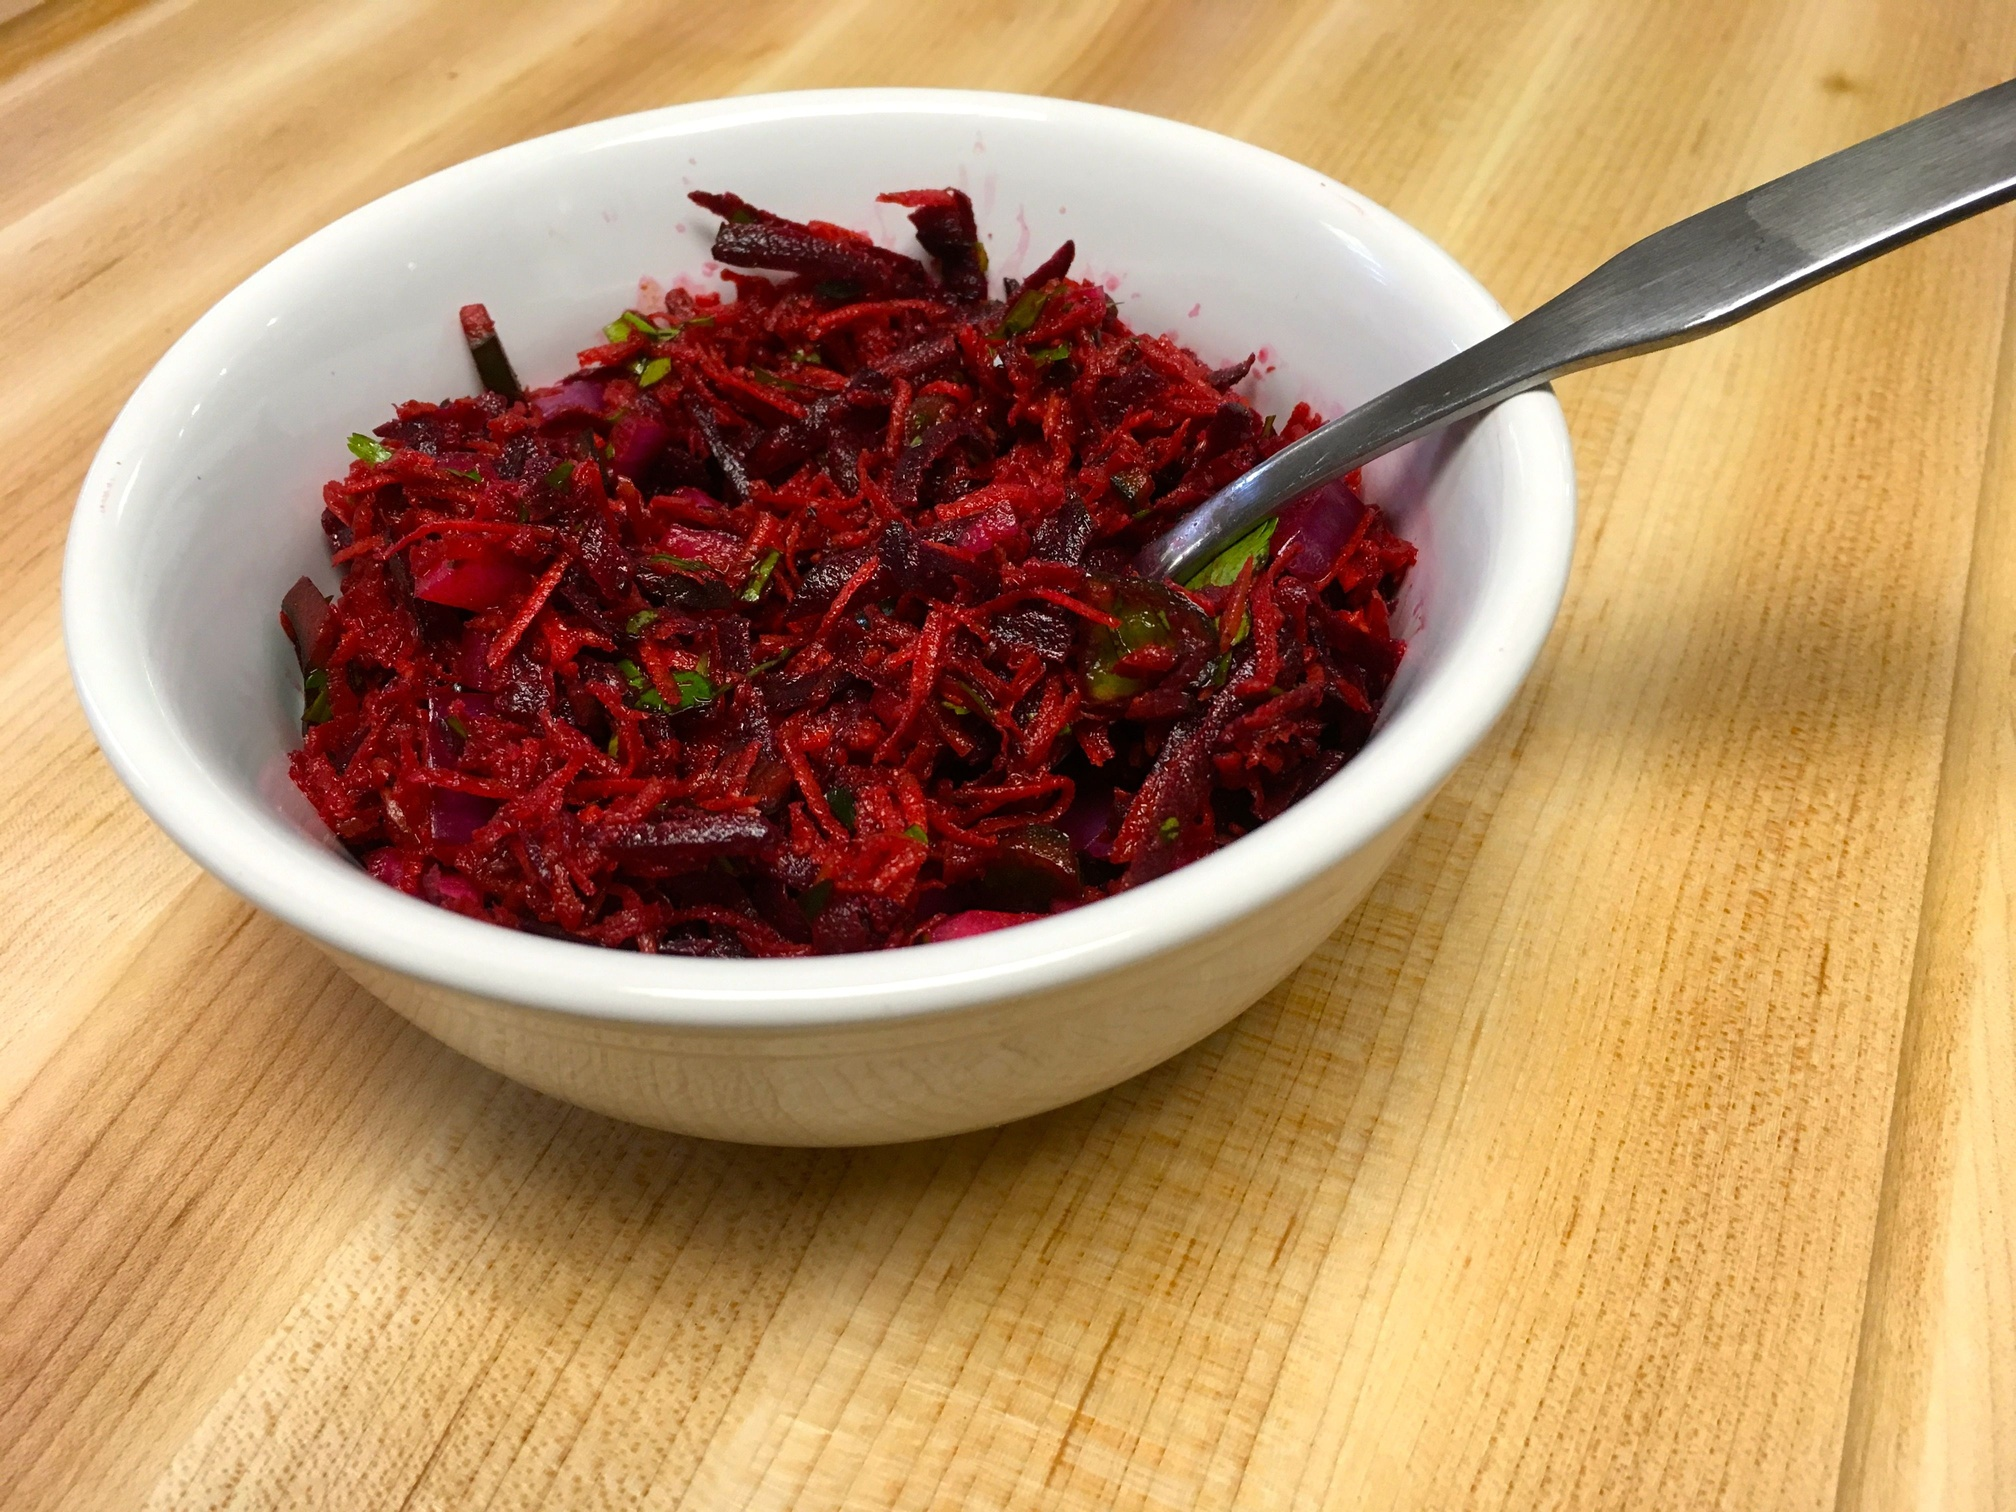 Gingered Carrot and Beet Salad